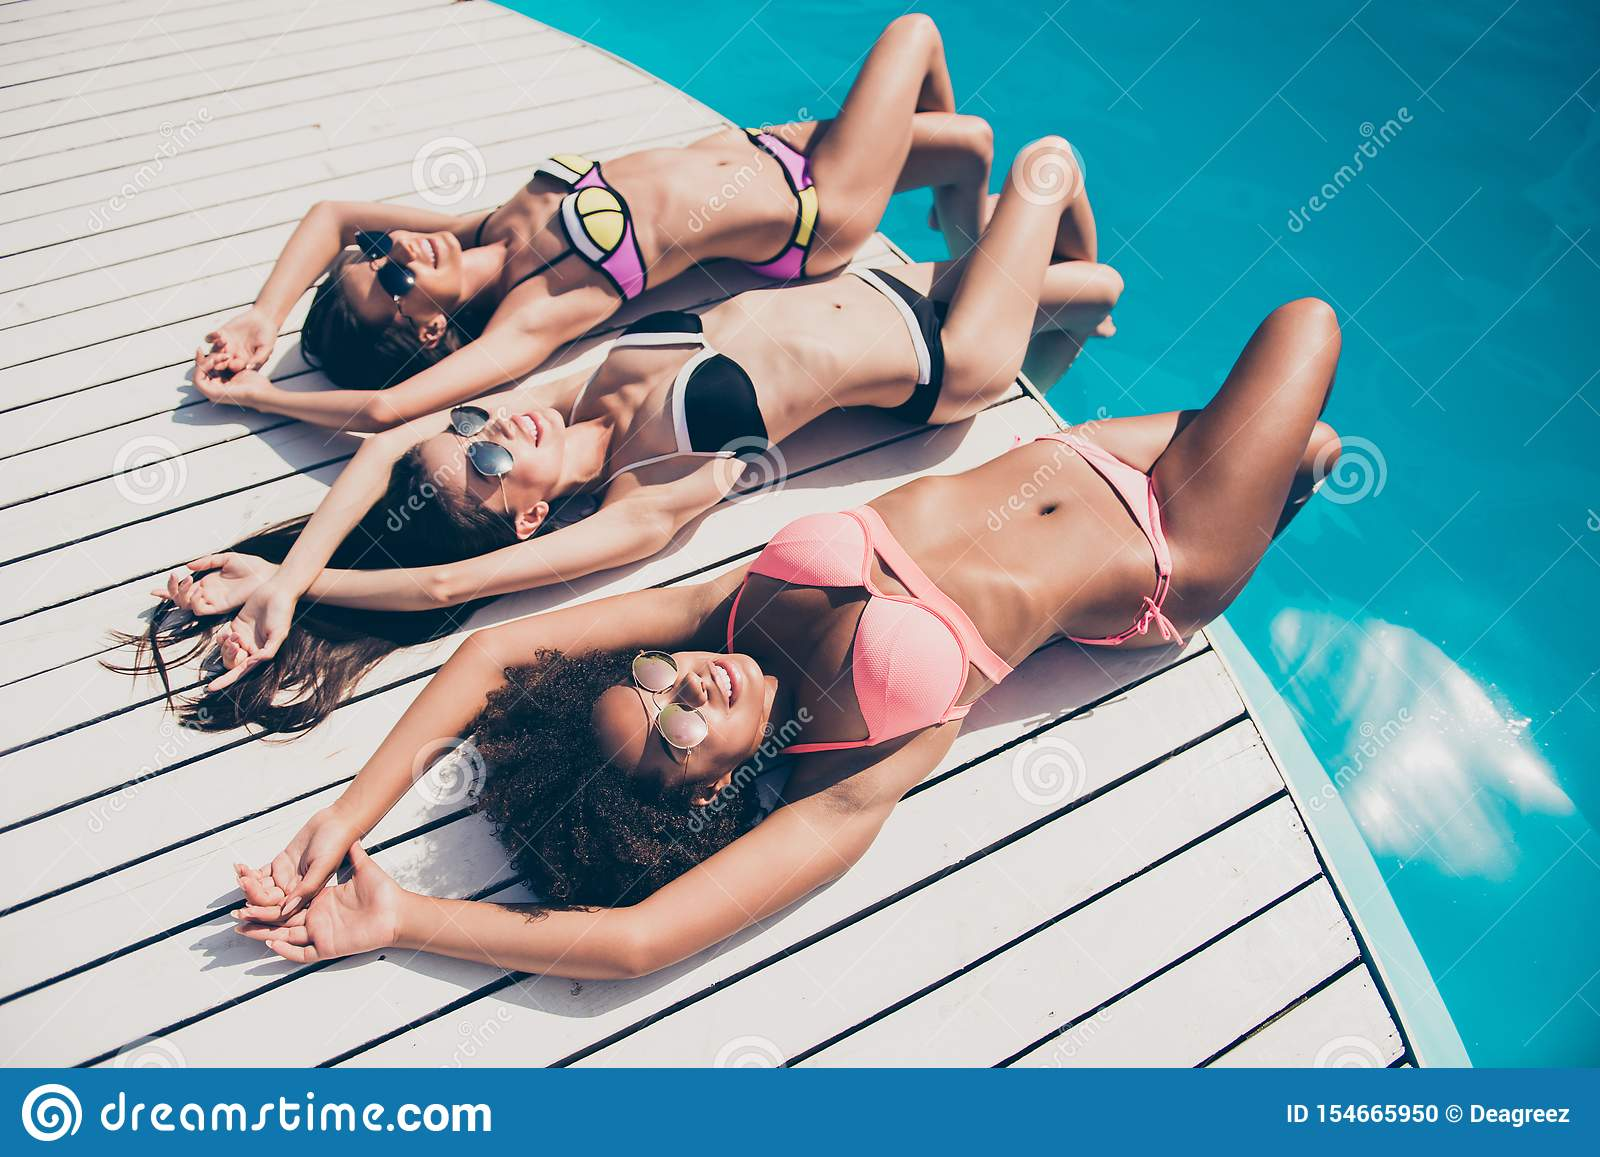 Top above high angle view of nice attractive peaceful slim fit thin sporty graceful girls lying on wood at fashionable